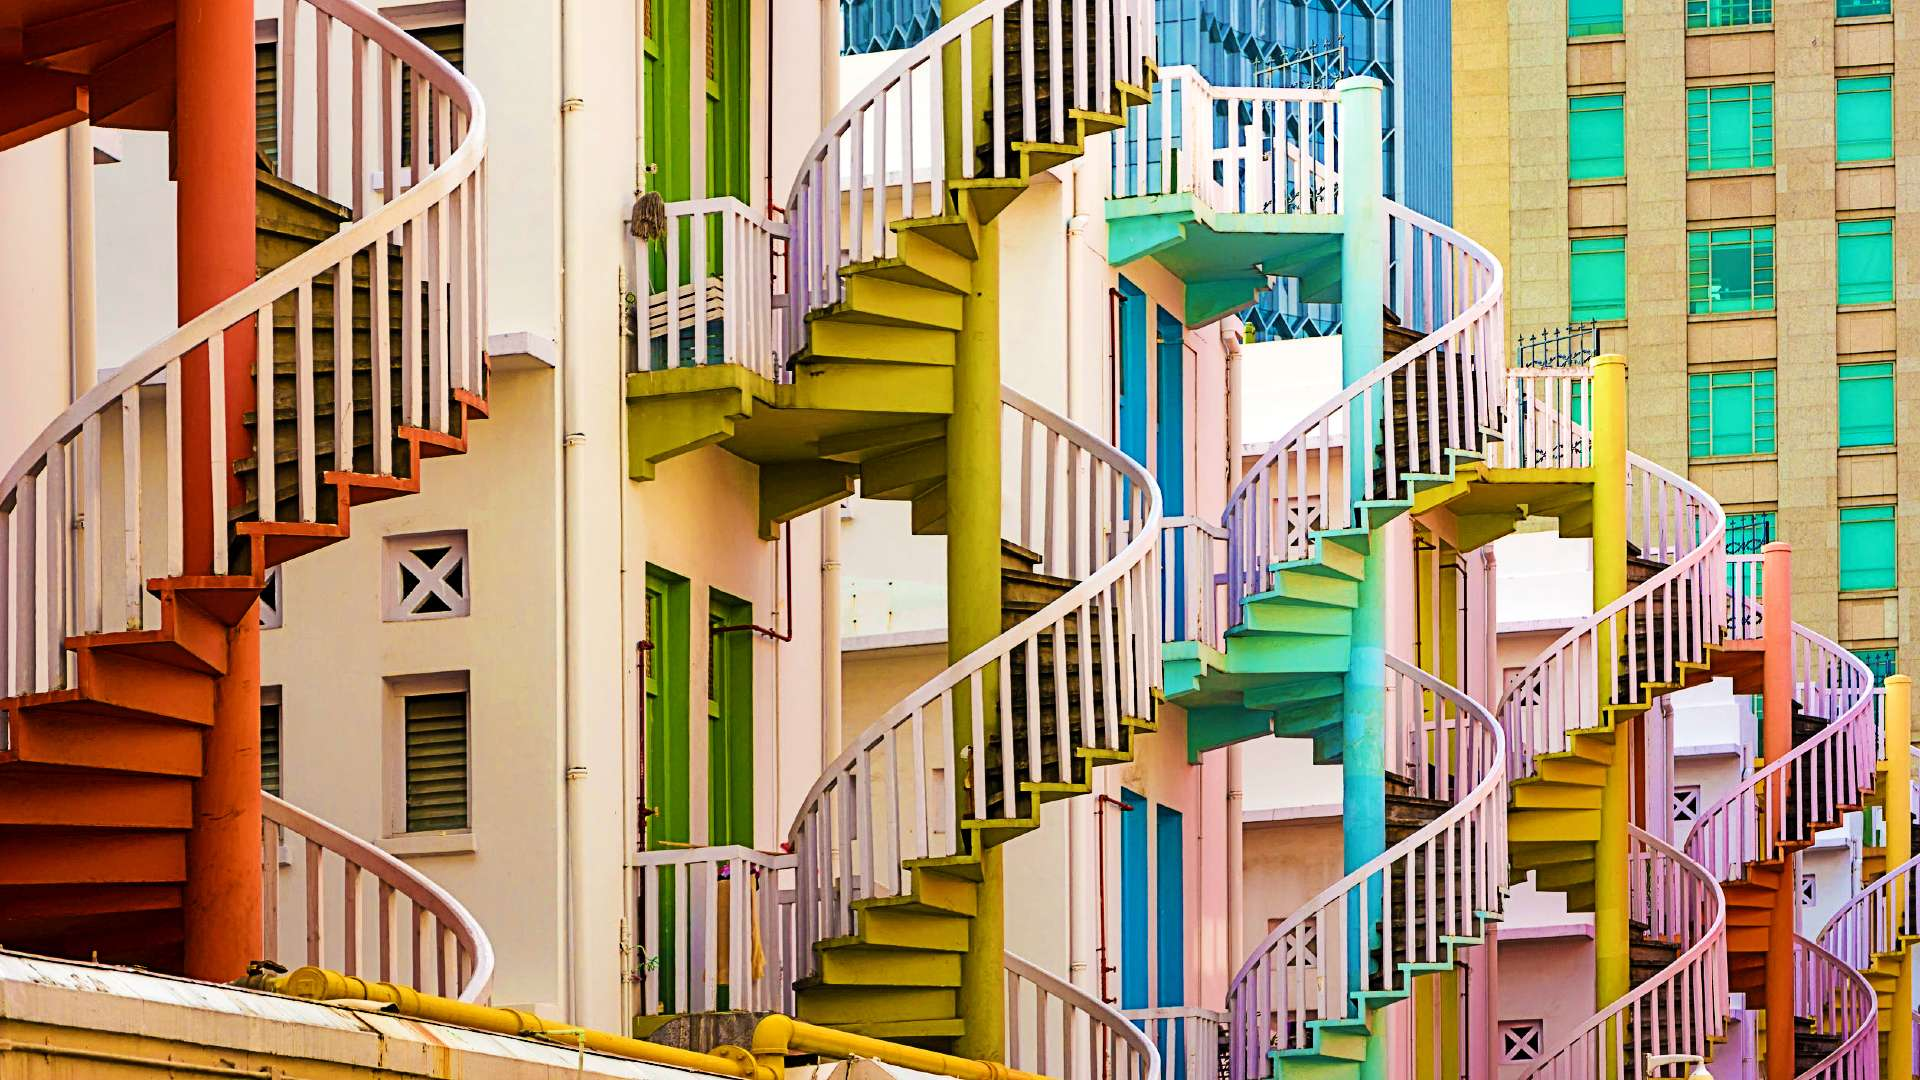 The spiral staircases off Queen Street are bound to make a colourful addition to your IG feed.